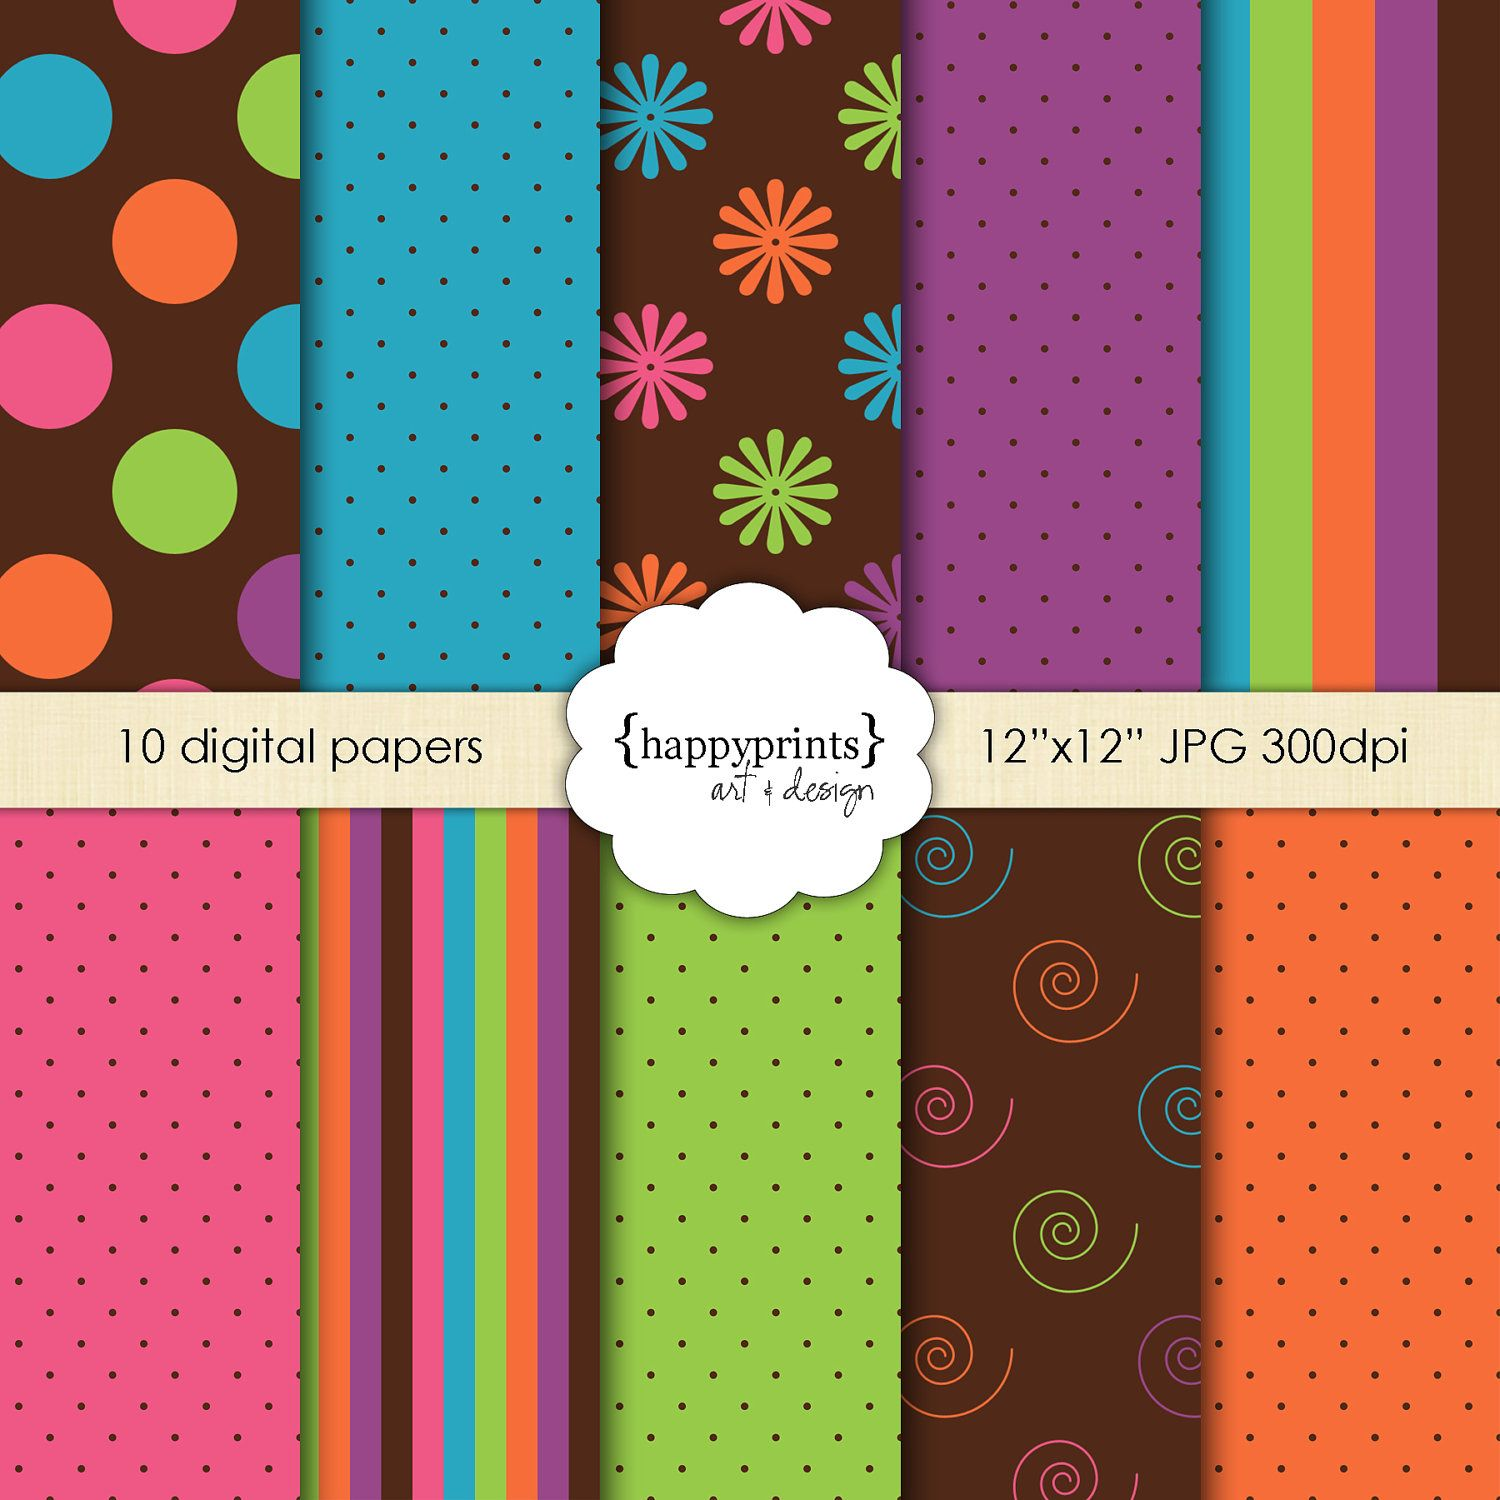 Digital paper pack candy design background wallpaper pattern digital paper pack candy design background wallpaper pattern craft paper jeuxipadfo Image collections